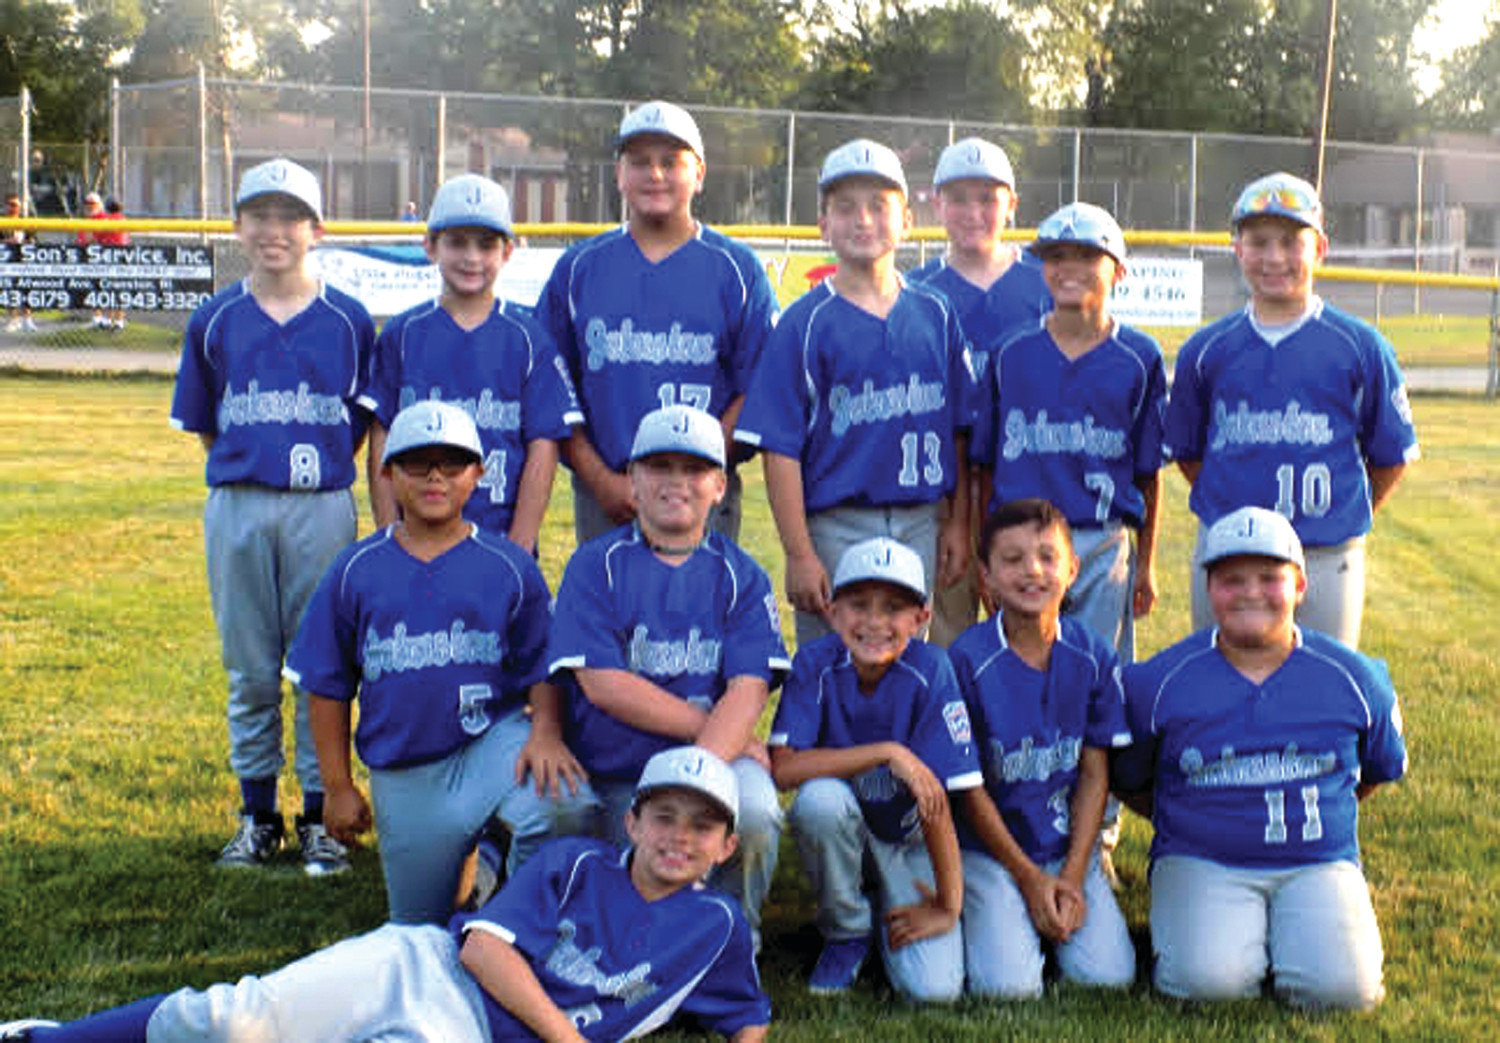 SUPER SQUAD: The Johnston Little League's All-Star Team that was made up of players ages 10 and 11, included in bottom row from left: Antonio Morales, Brady Murray, Ron Vento, Jayden Allard, Nick Testa and Michael Allard. Top: Nick D'Aquila, Jason Schino, Preston Marchessealt, Matt Clements, Logan Martins and Dean Paris. (Submitted photo)